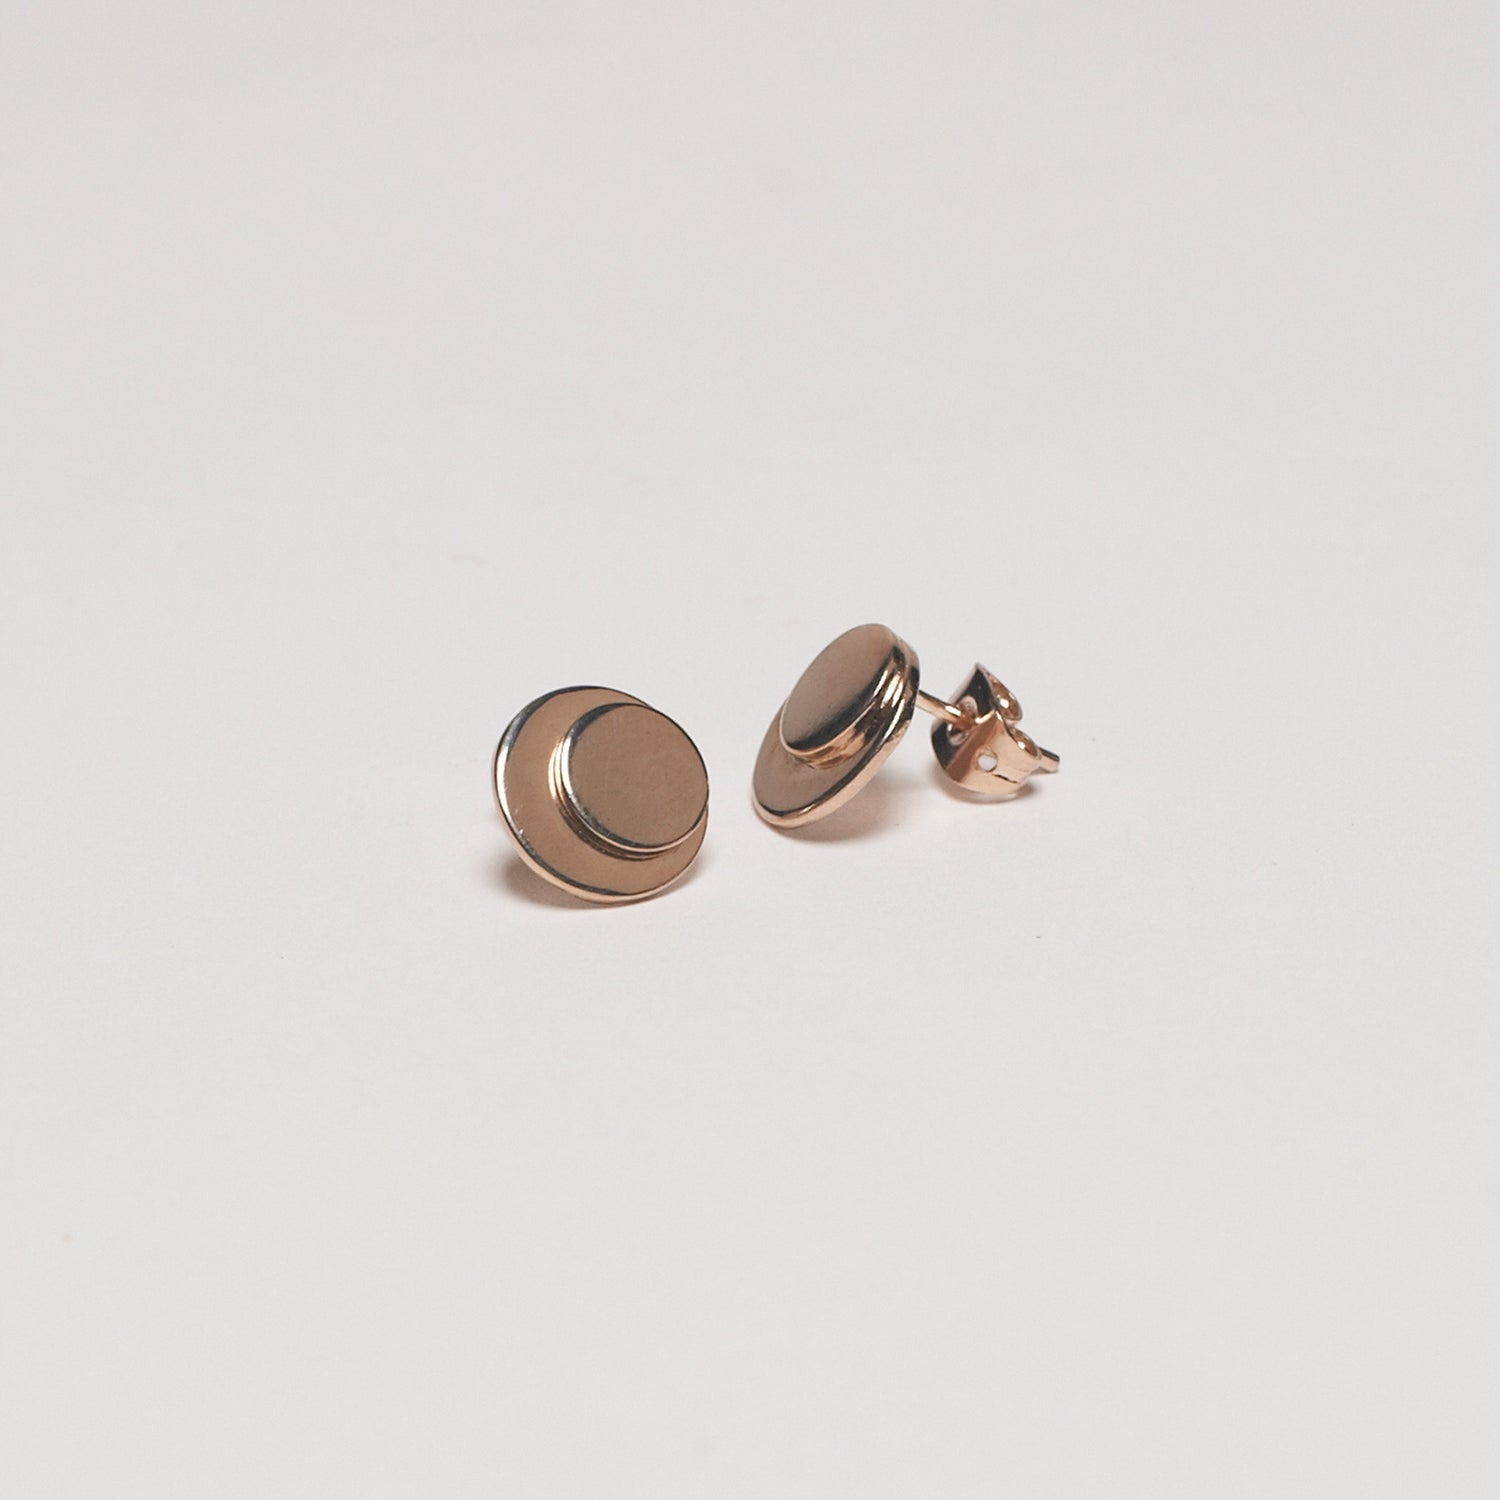 Image of Collection 1920's - Bo Eclipse / Eclipse earing